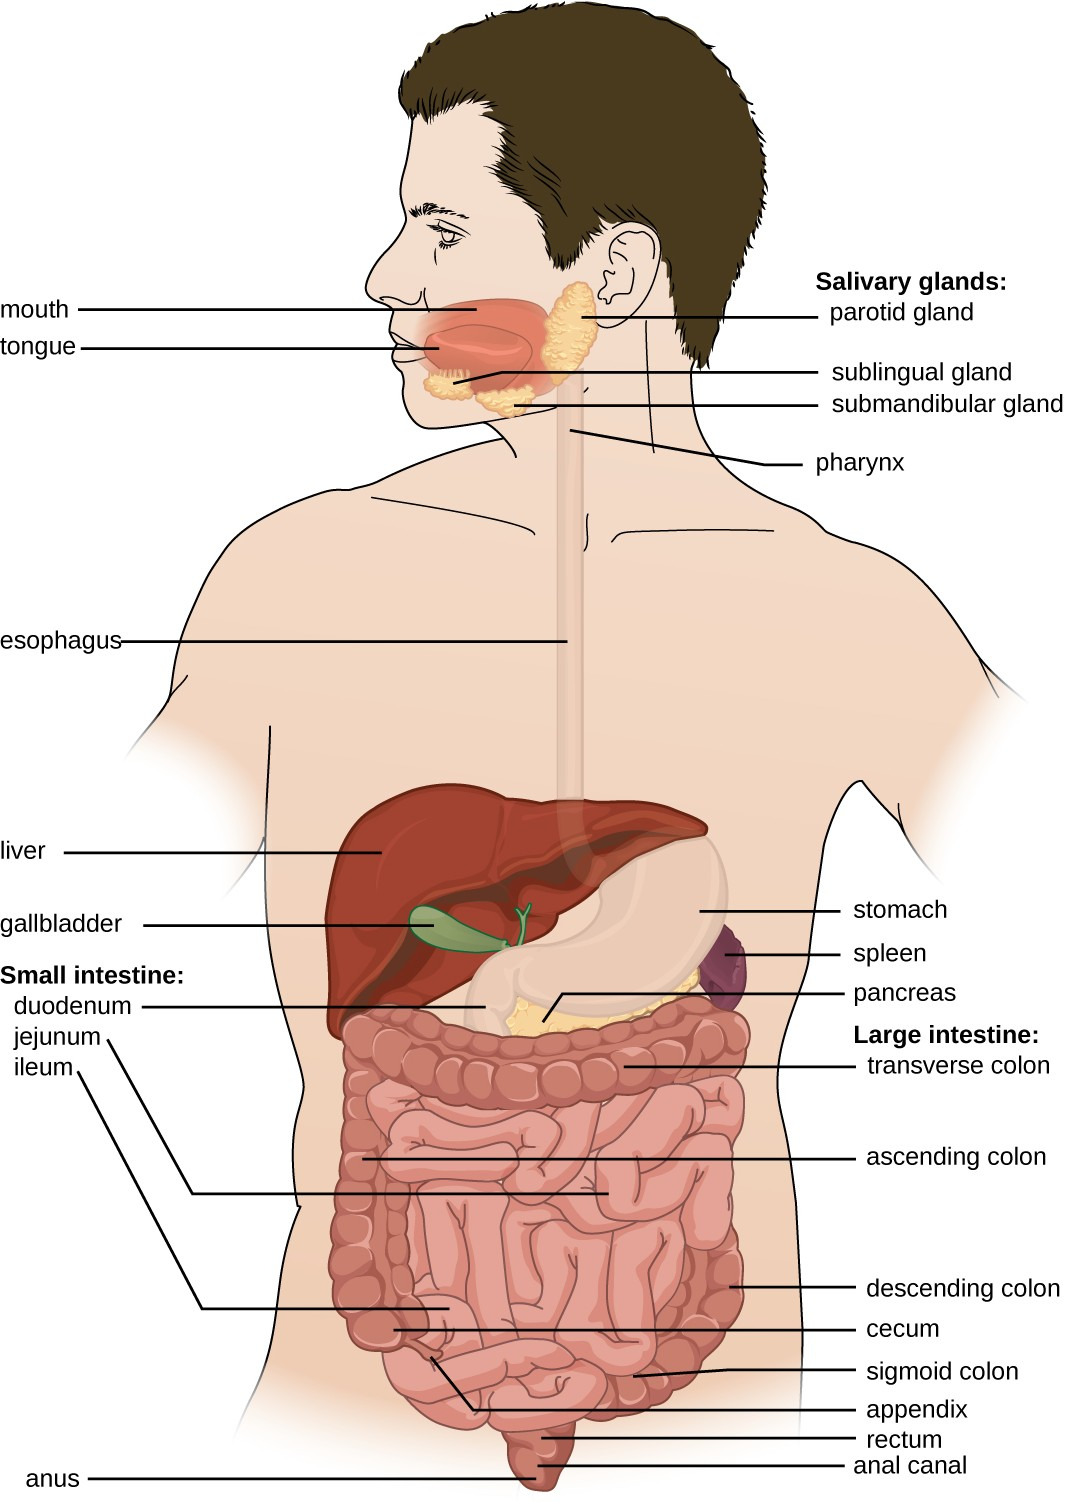 The digestive system, or the gastrointestinal tract, includes all of the organs associated with the digestion of food.